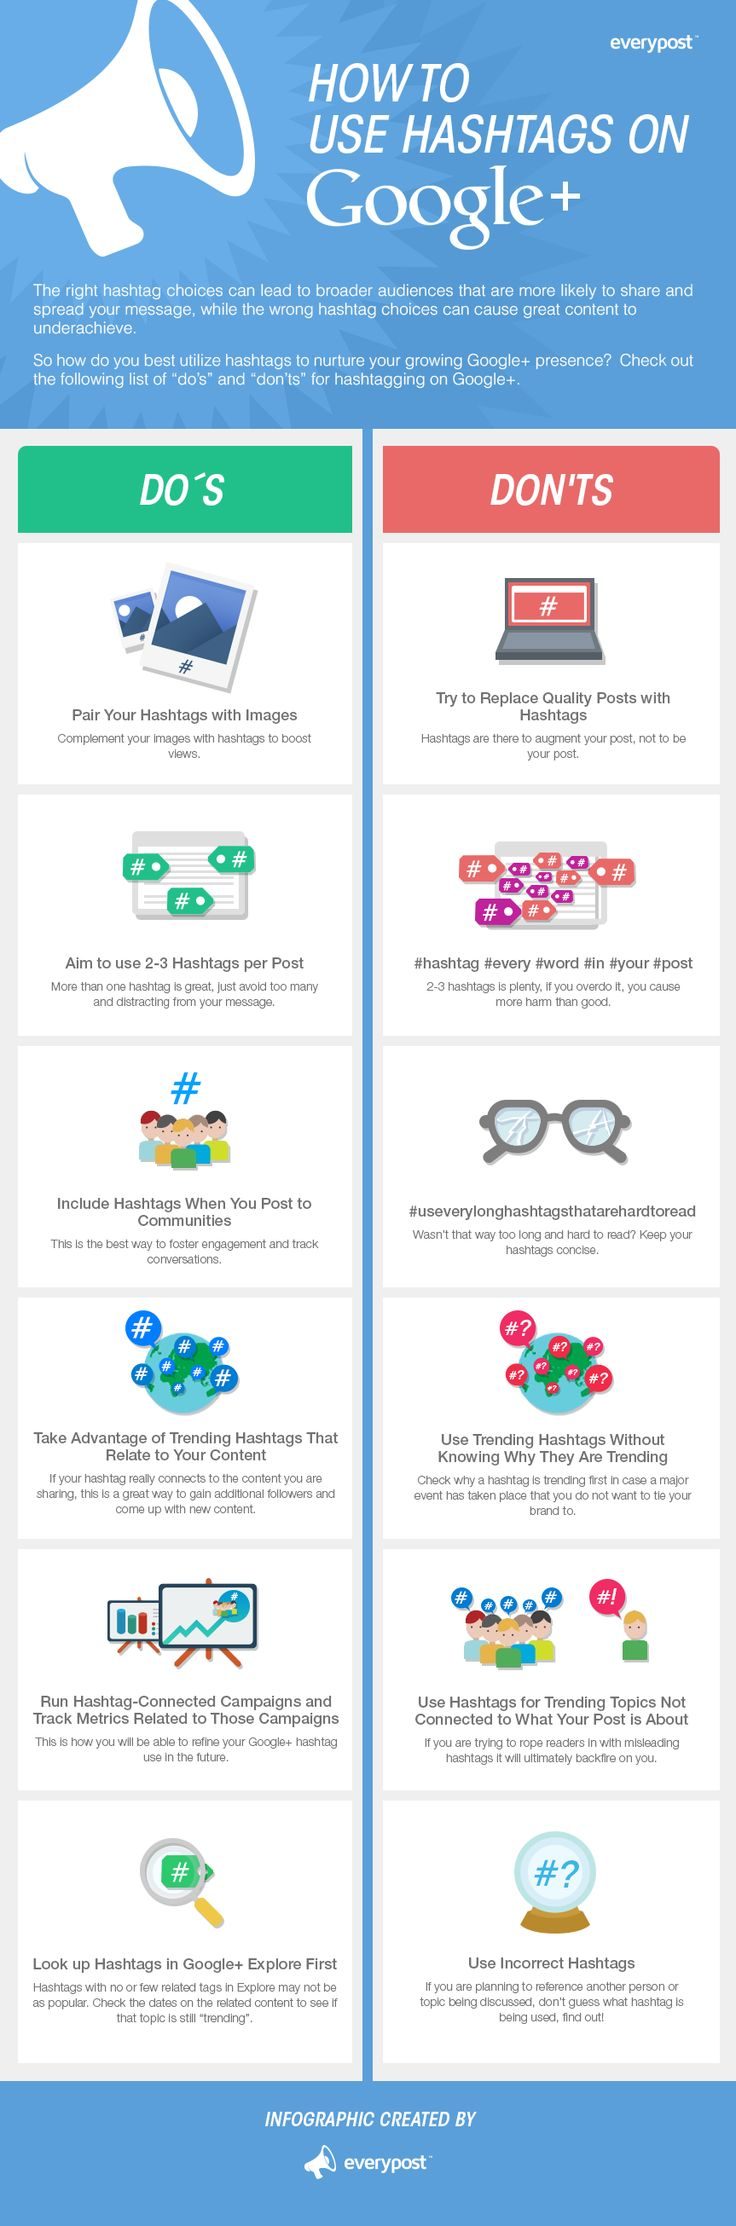 Google+ #Hashtags, Do's and Don'ts -  #infographic